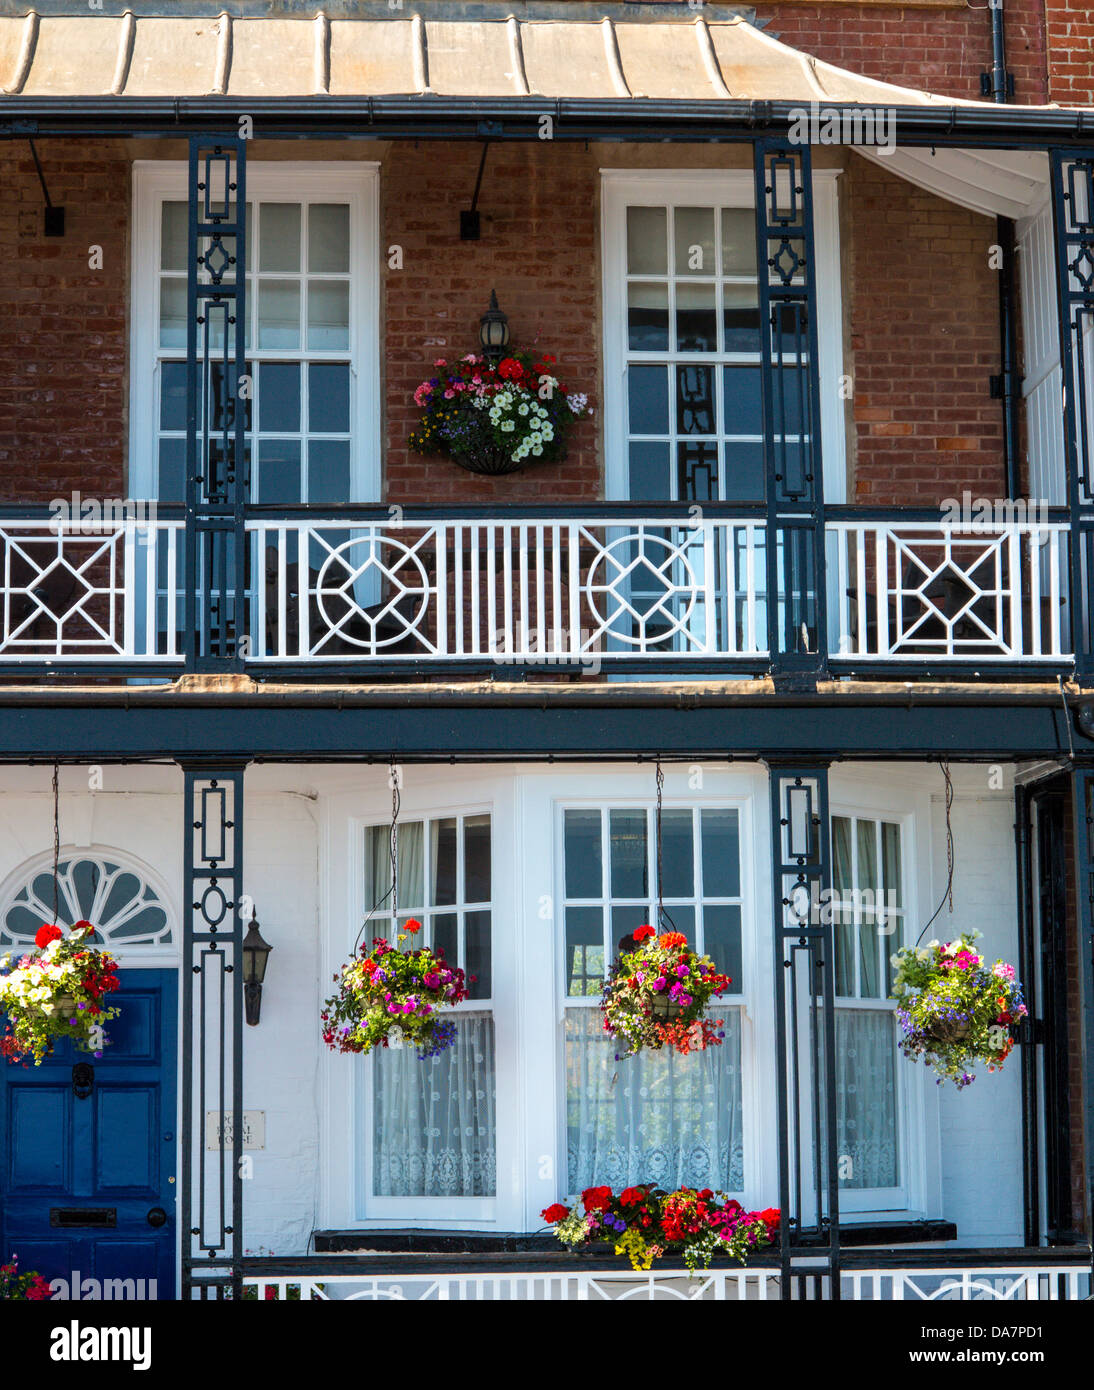 House with flower baskets and balconies on the seafront at Sidmouth, Devon, England - Stock Image